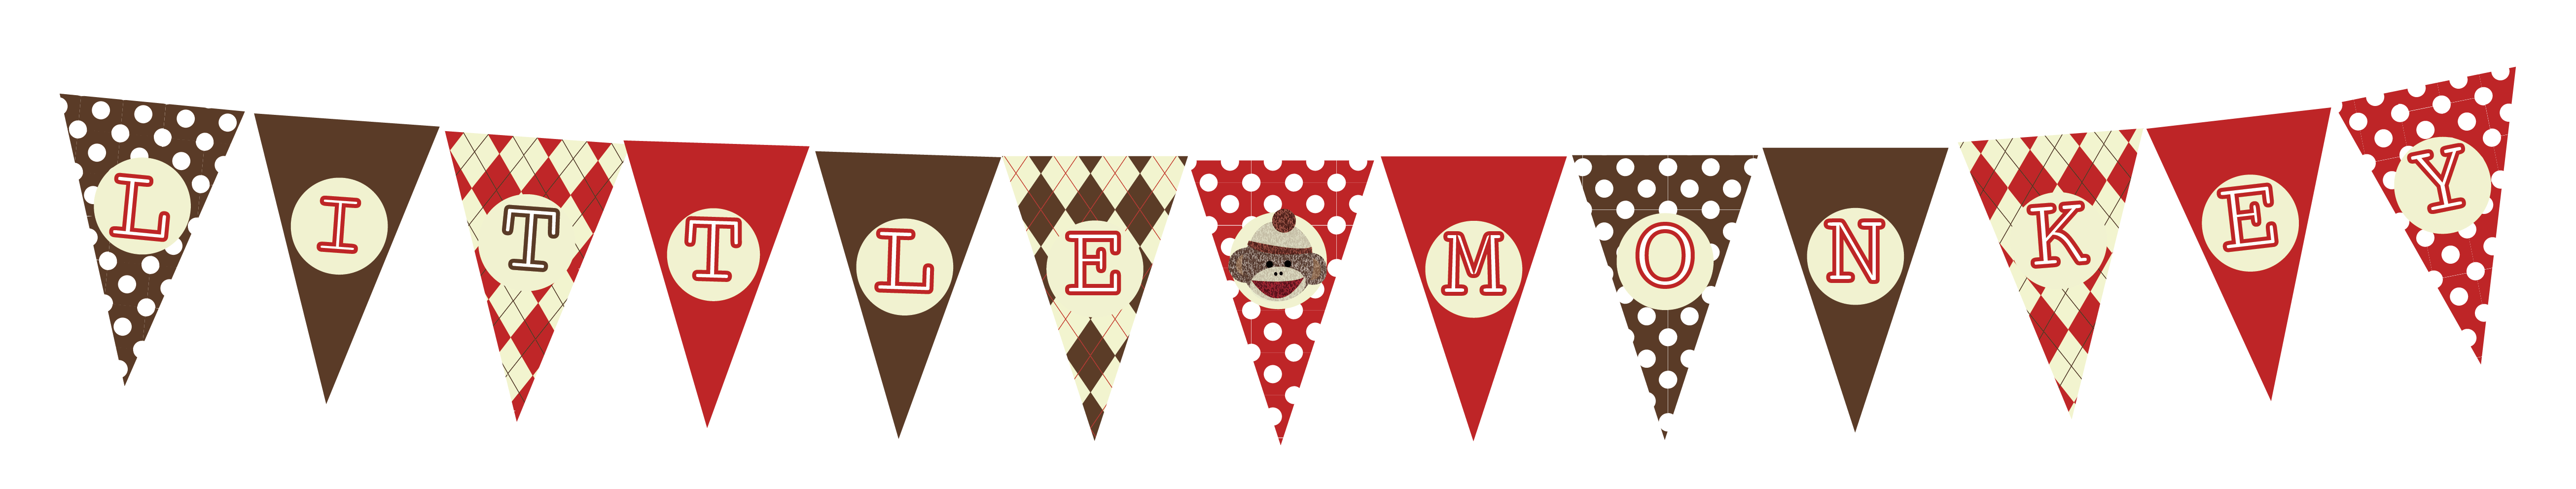 Free Sock Monkey Printable Decorations For Baby Shower Or Birthday - Free Printable Sock Monkey Pictures